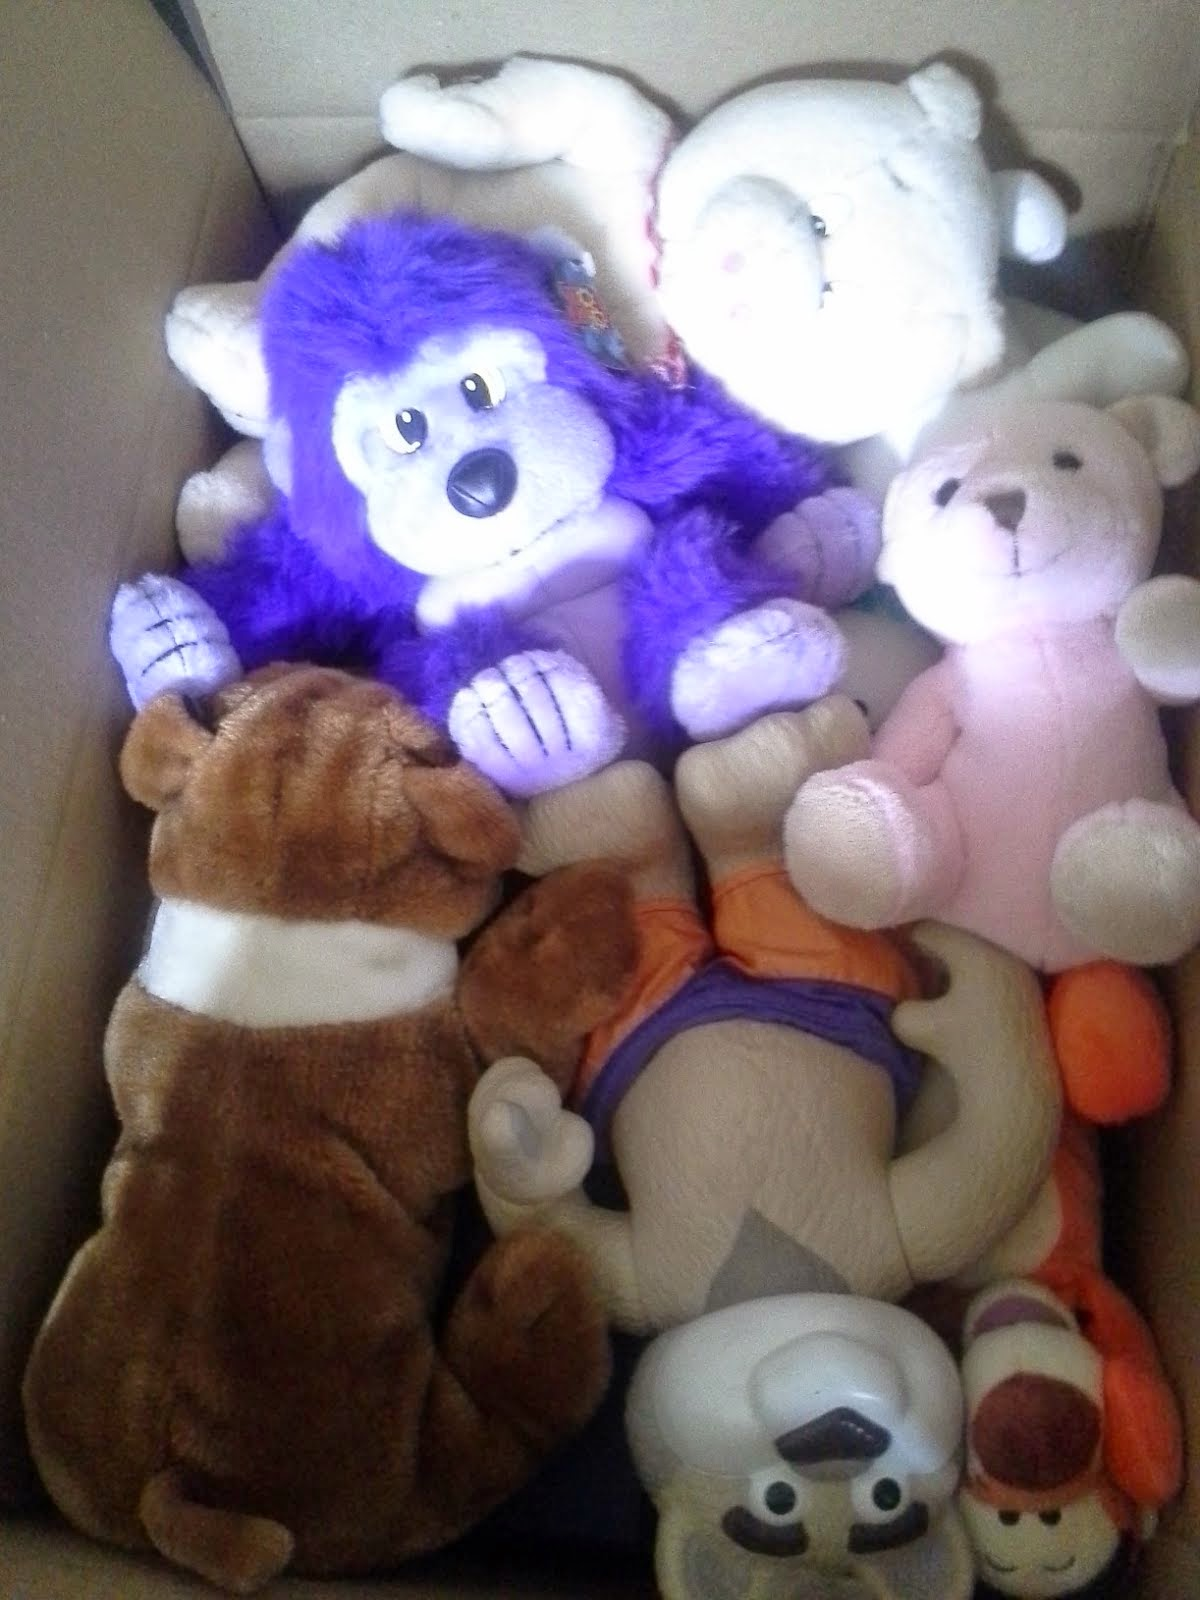 Stuffed Toys for Day Care Schools